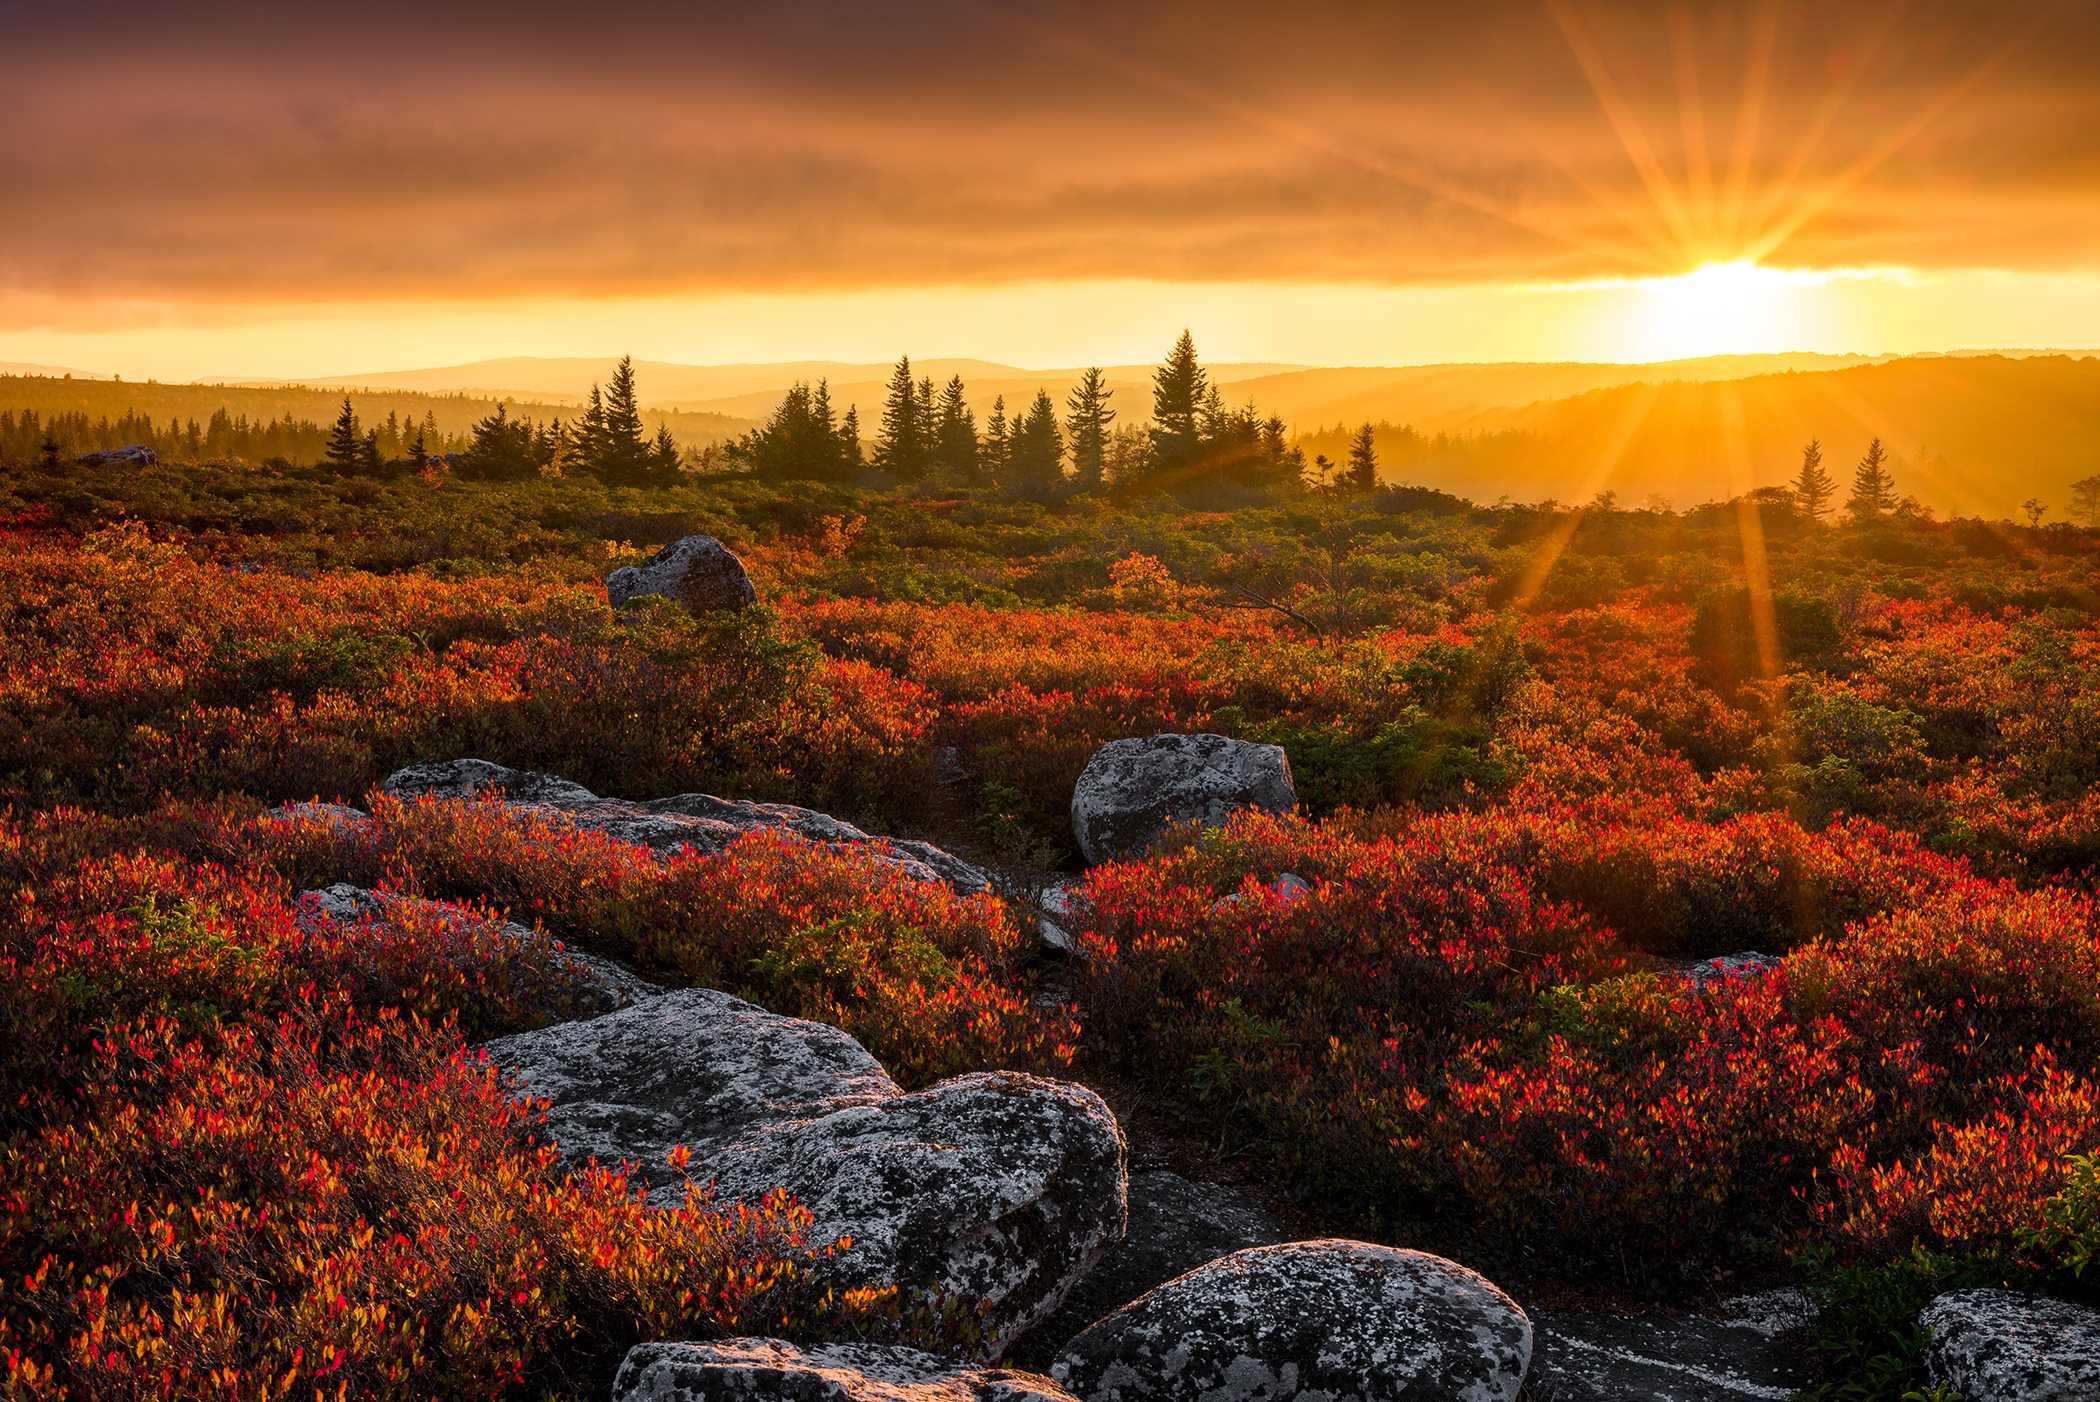 A field of orange flowers and rocks leading to a forest and mountains at sunset